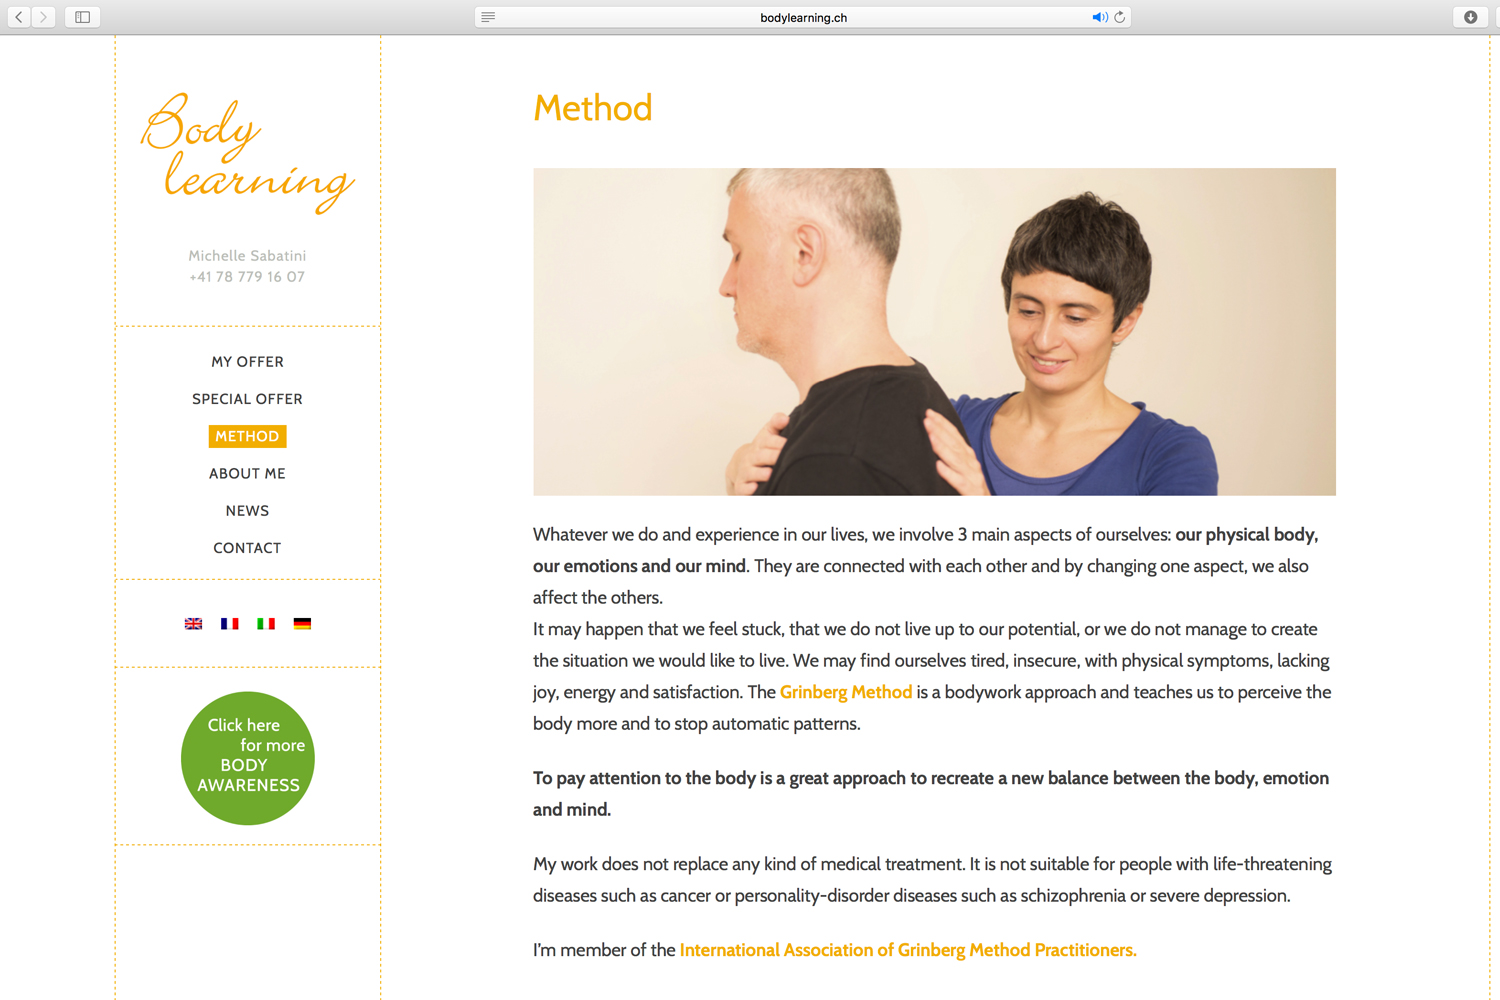 portfolio-web-design-bodylearning-2b.jpg